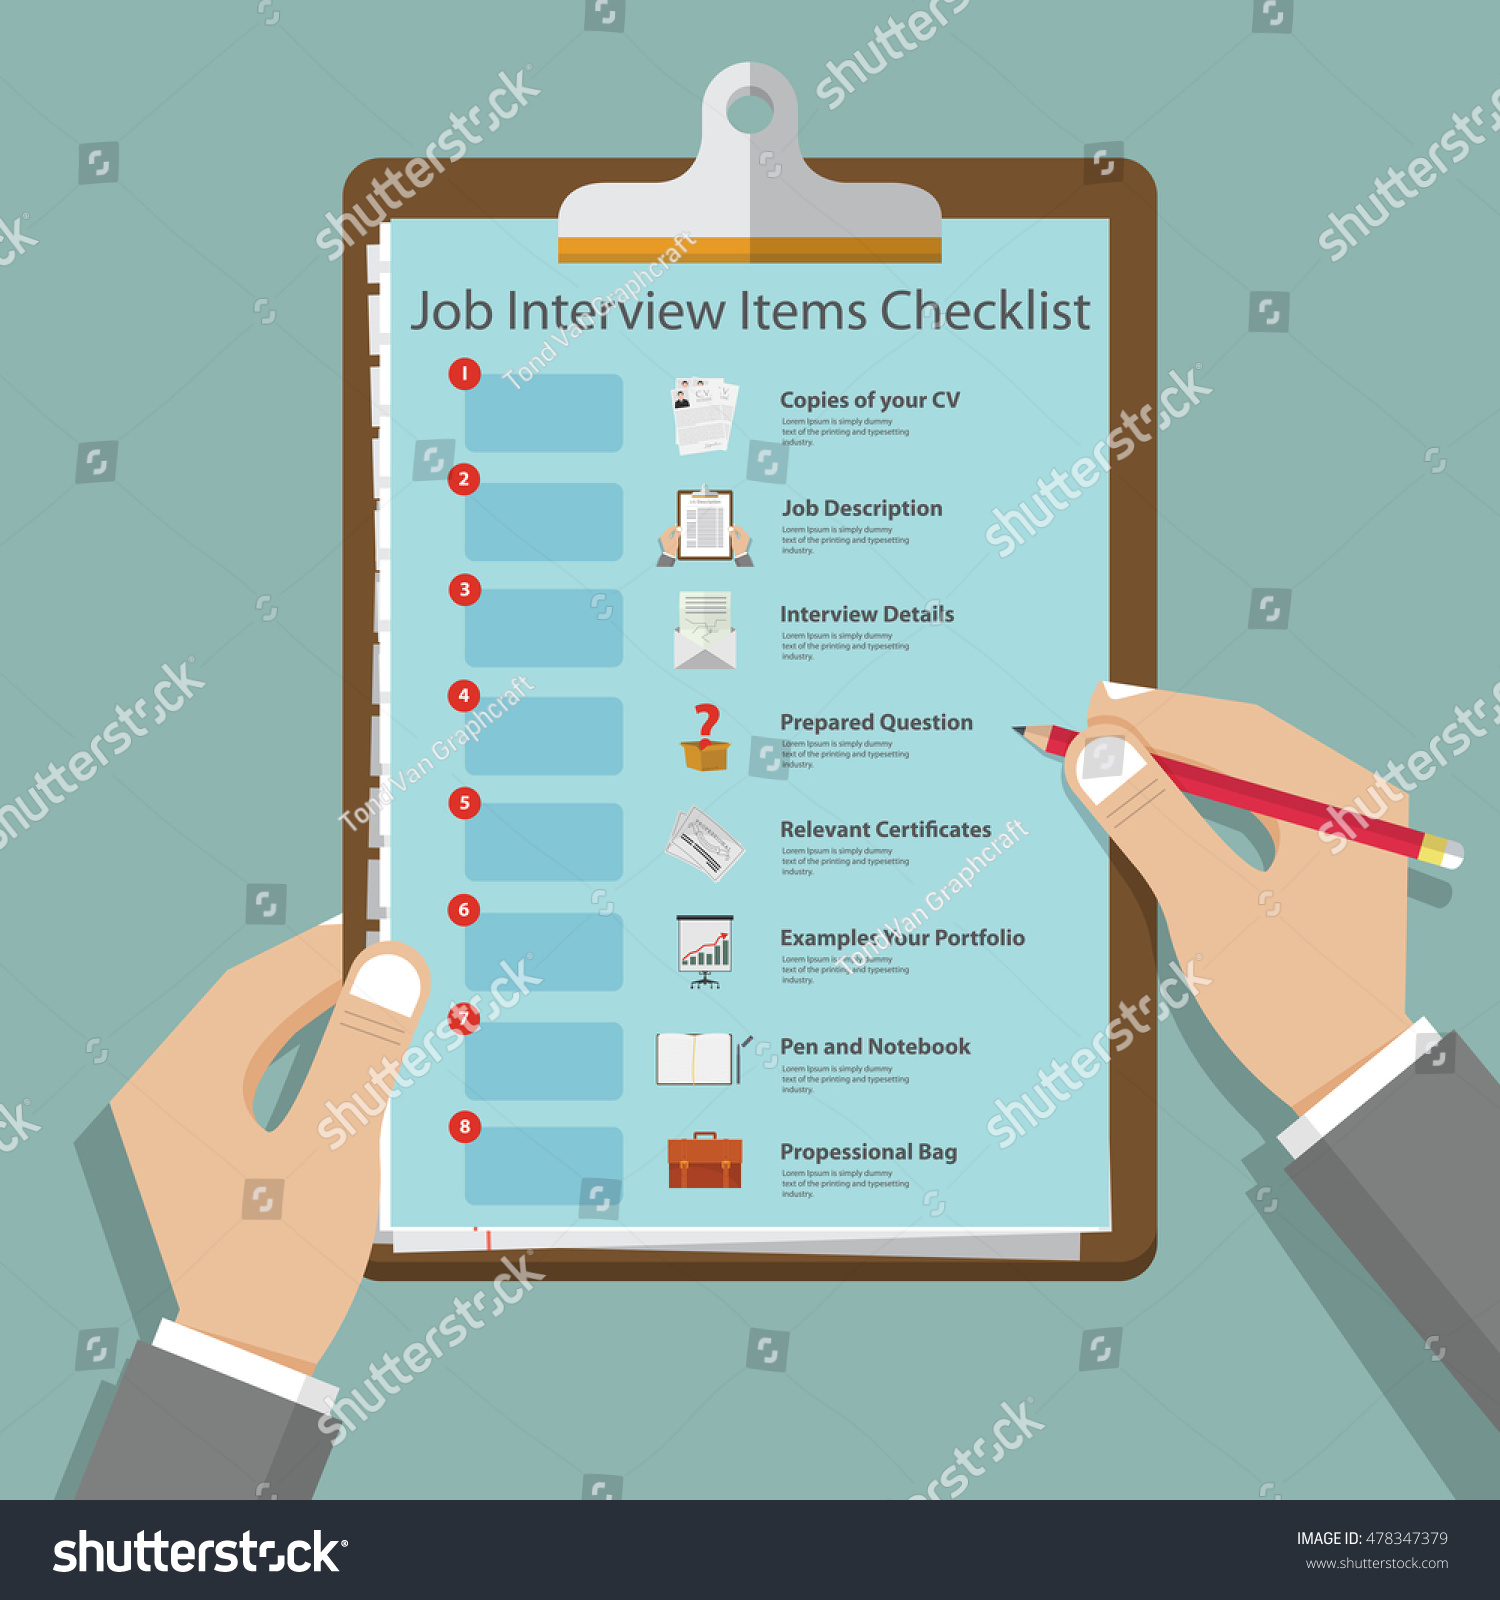 essential job interview icons flat design stock vector  essential job interview icons in flat design on clipboard job interview preparation infographic vector